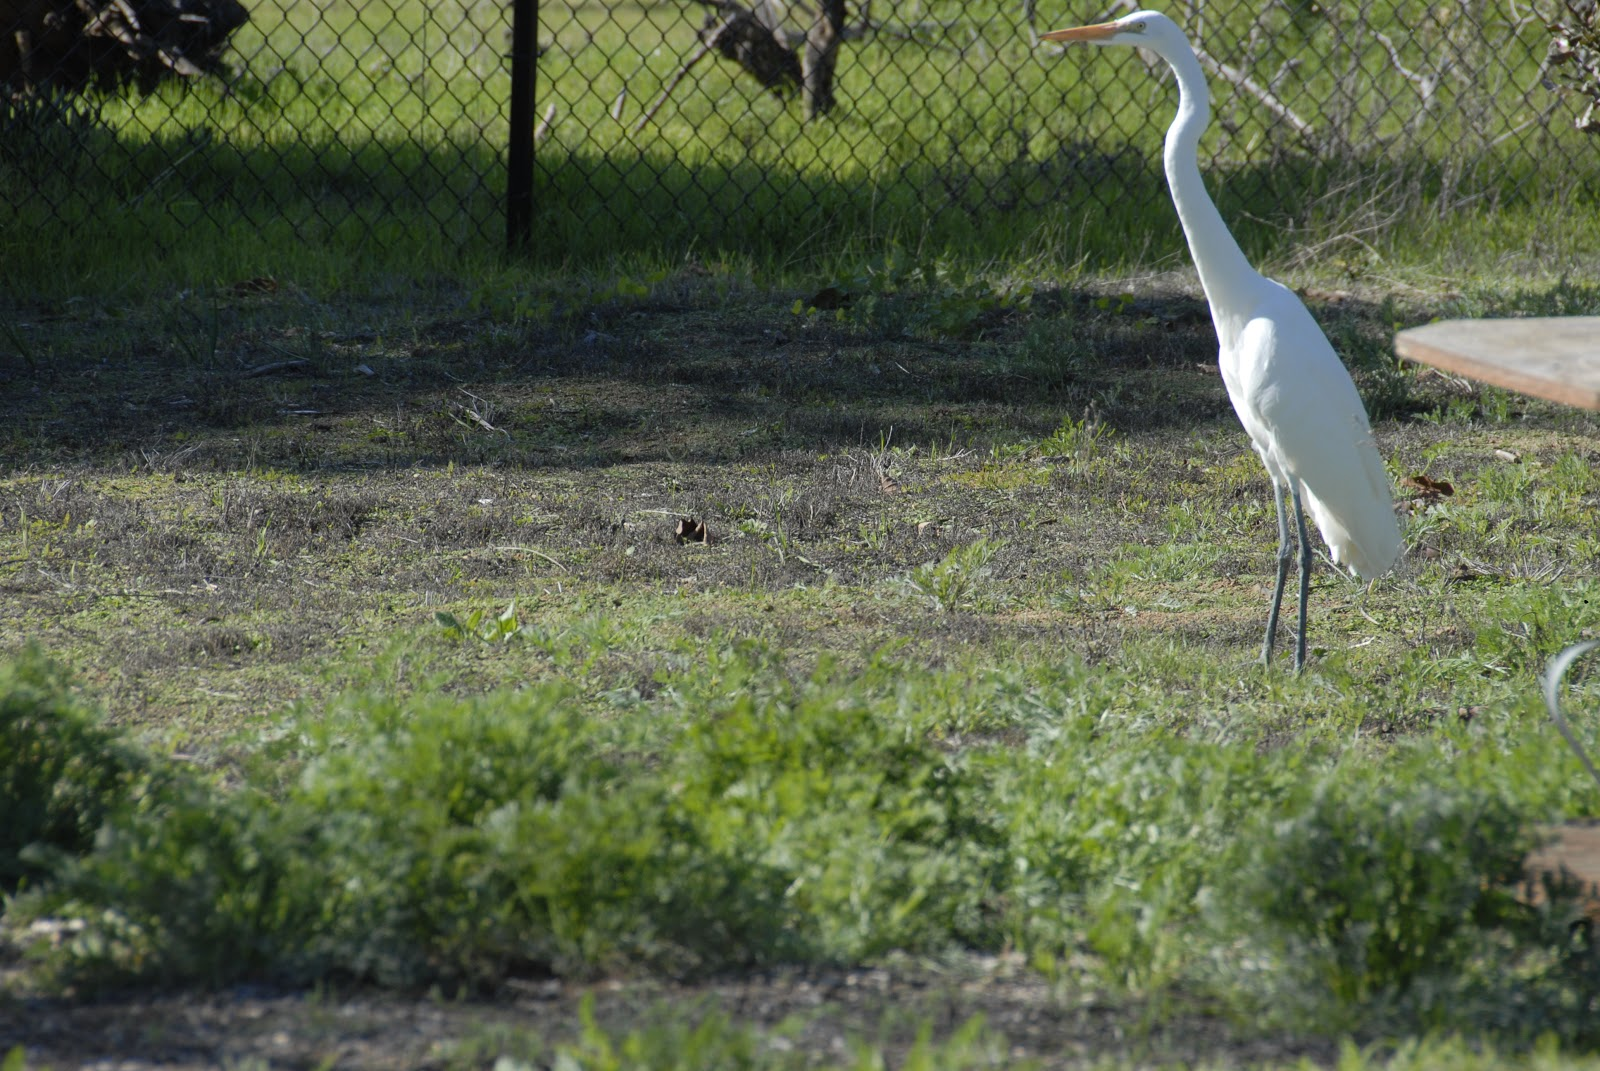 egret roaming around the ranch